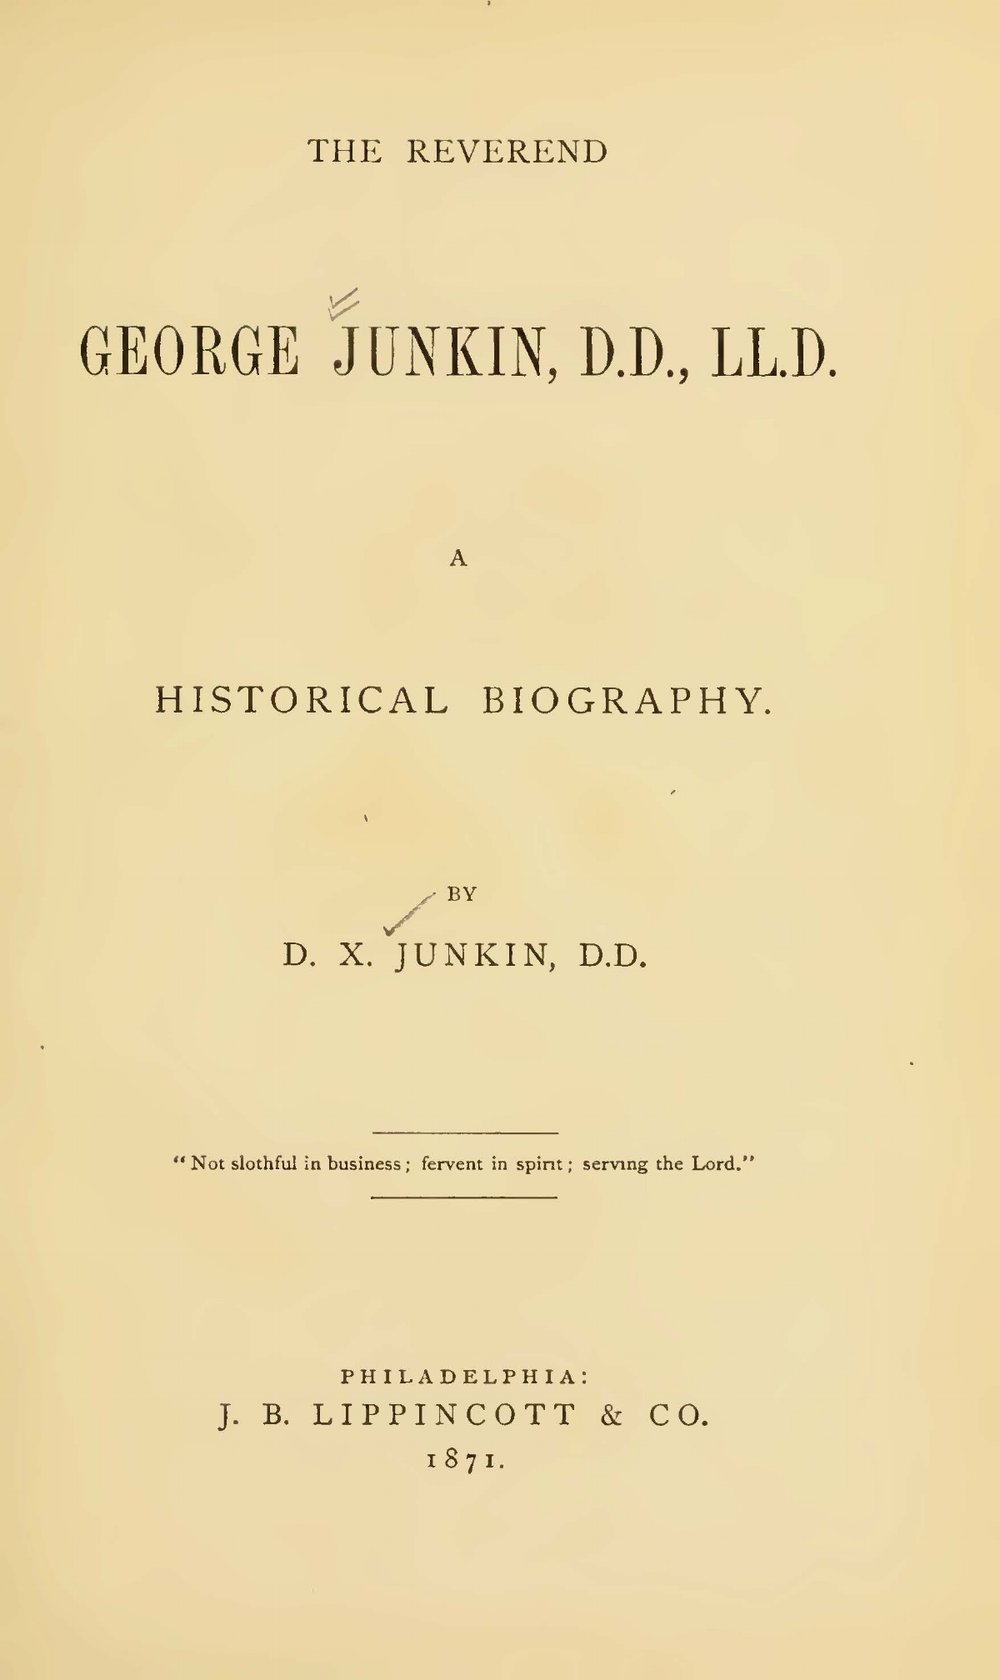 Junkin, David Xavier, The Reverend George Junkin A Historical Biography Title Page.jpg